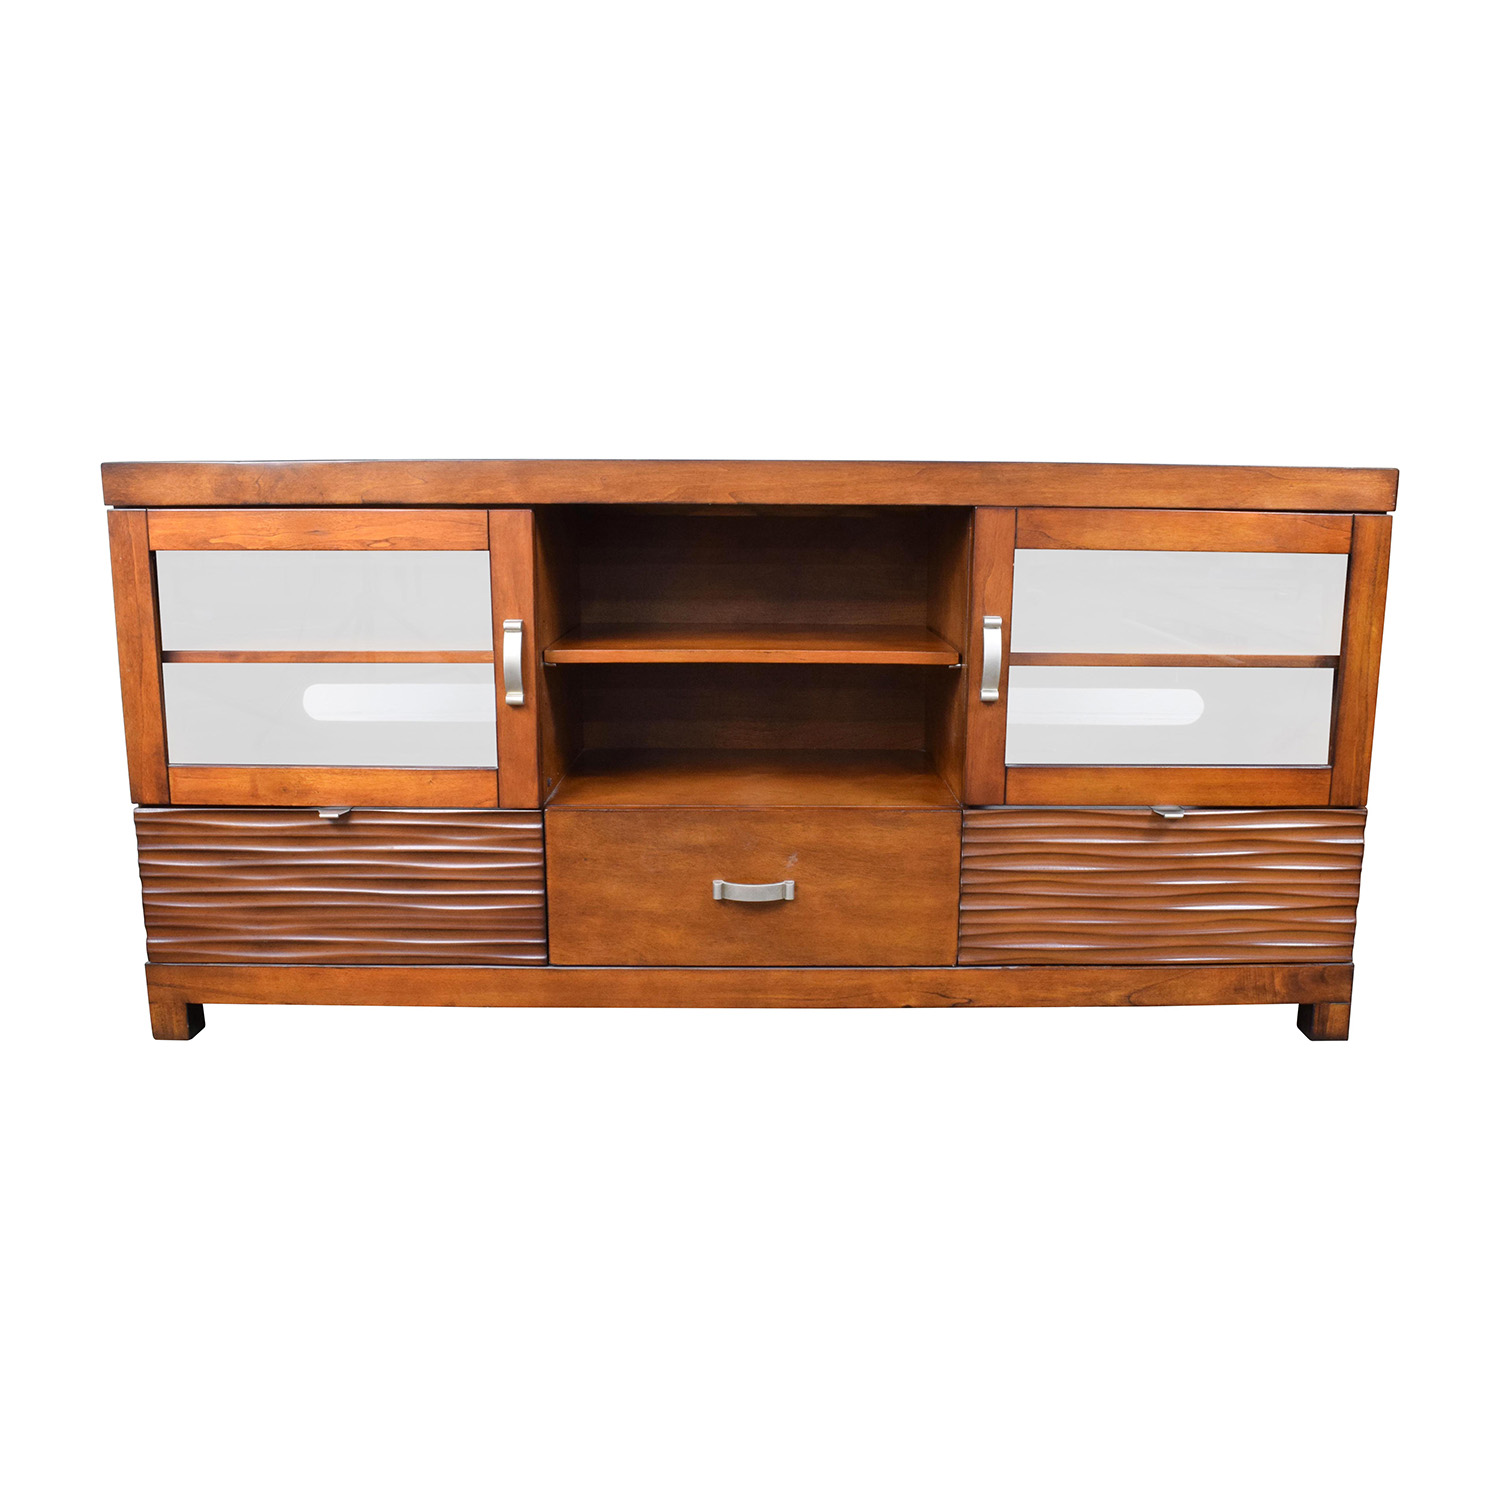 Bobs Furniture Wood TV Stand With Storage / Storage ...